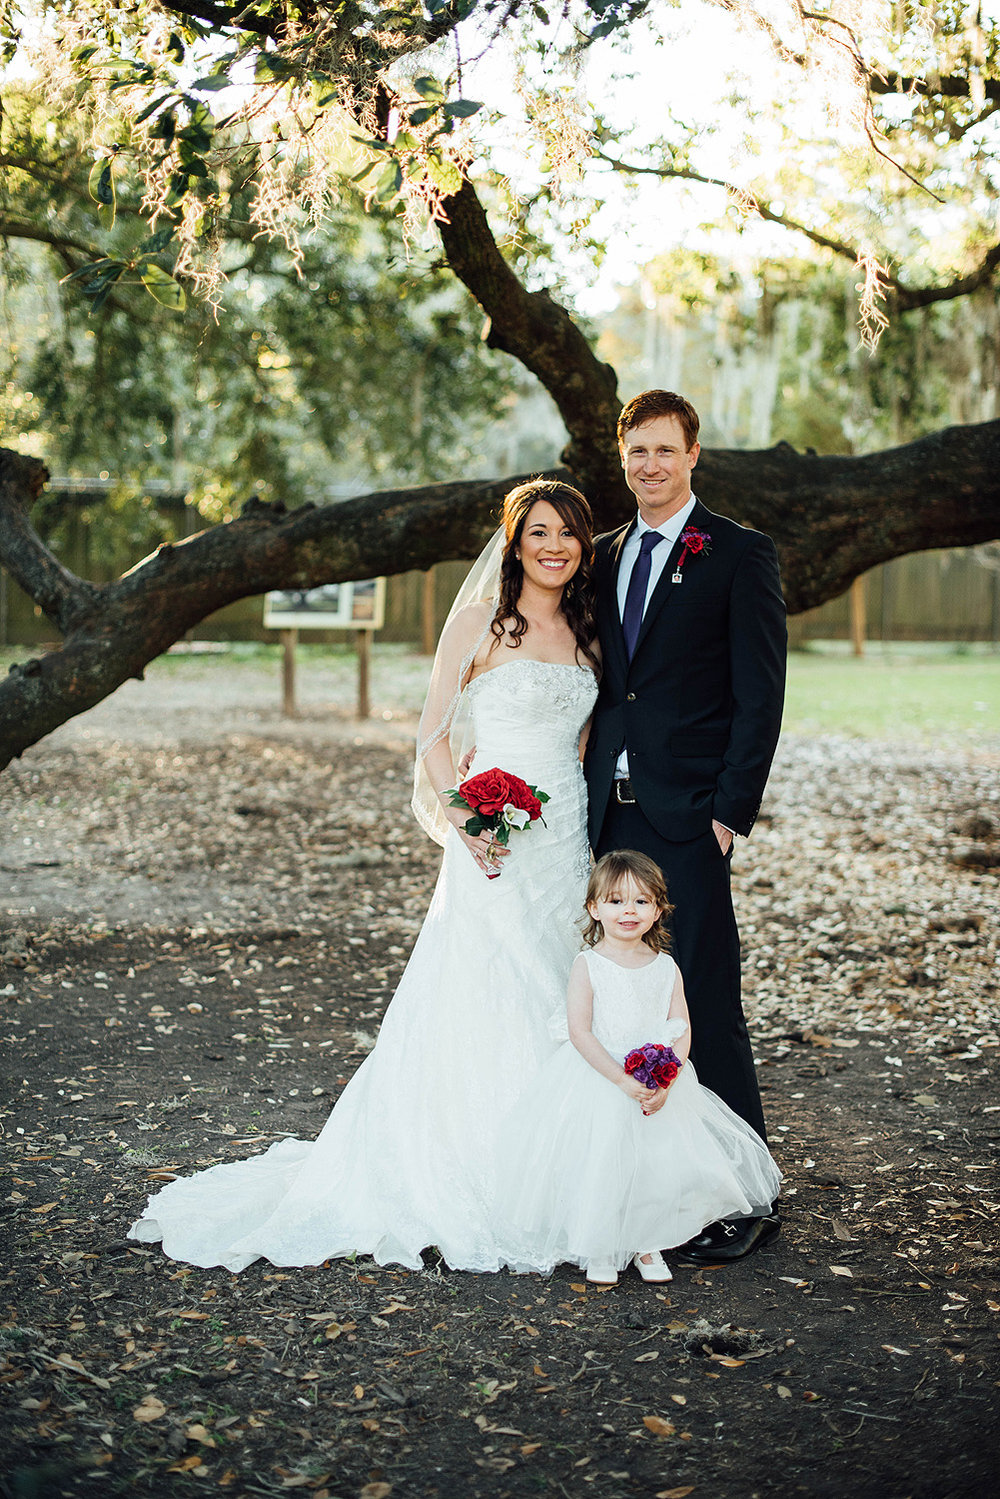 Lisa + Rock-Tree-of-Life-Audubon-Park-New-Orleans-Elopement-Photos_Online_0070.jpg